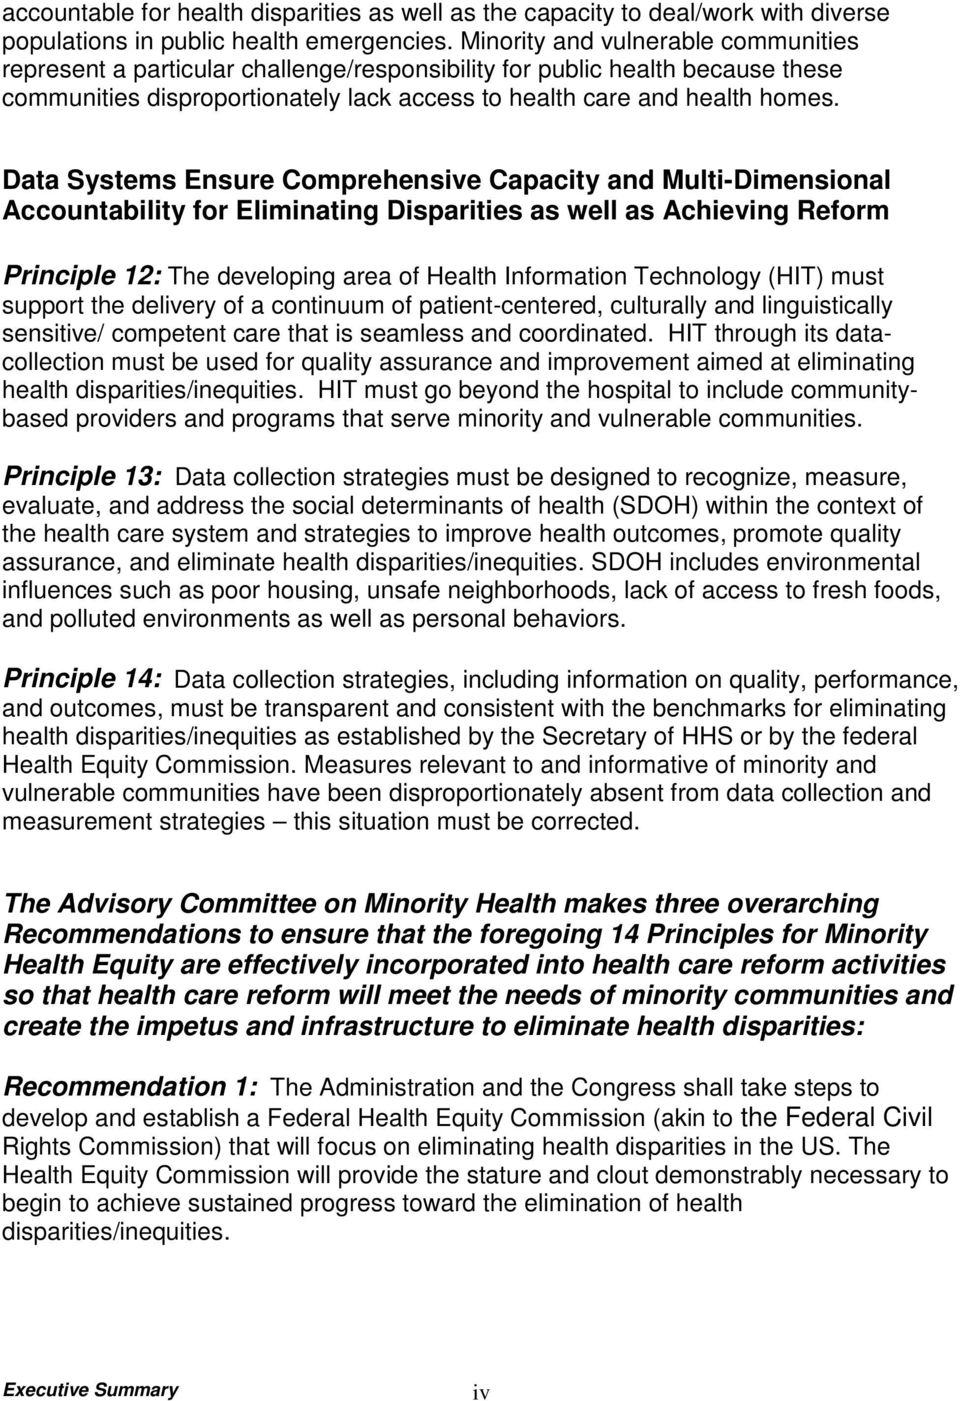 Data Systems Ensure Comprehensive Capacity and Multi-Dimensional Accountability for Eliminating Disparities as well as Achieving Reform Principle 12: The developing area of Health Information